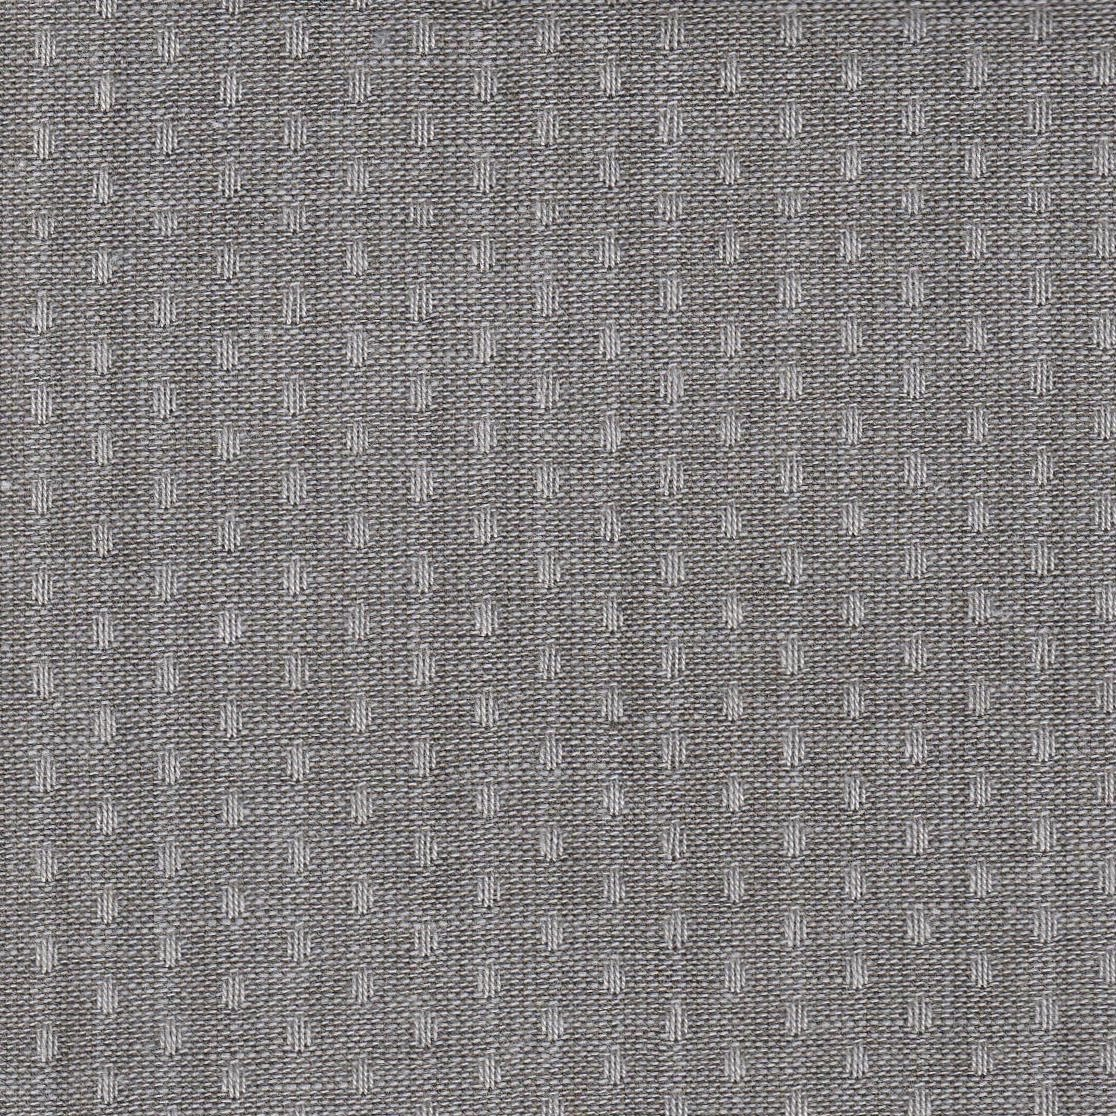 Diamond Textiles Manchester - Pluses and Crosses (Grey)